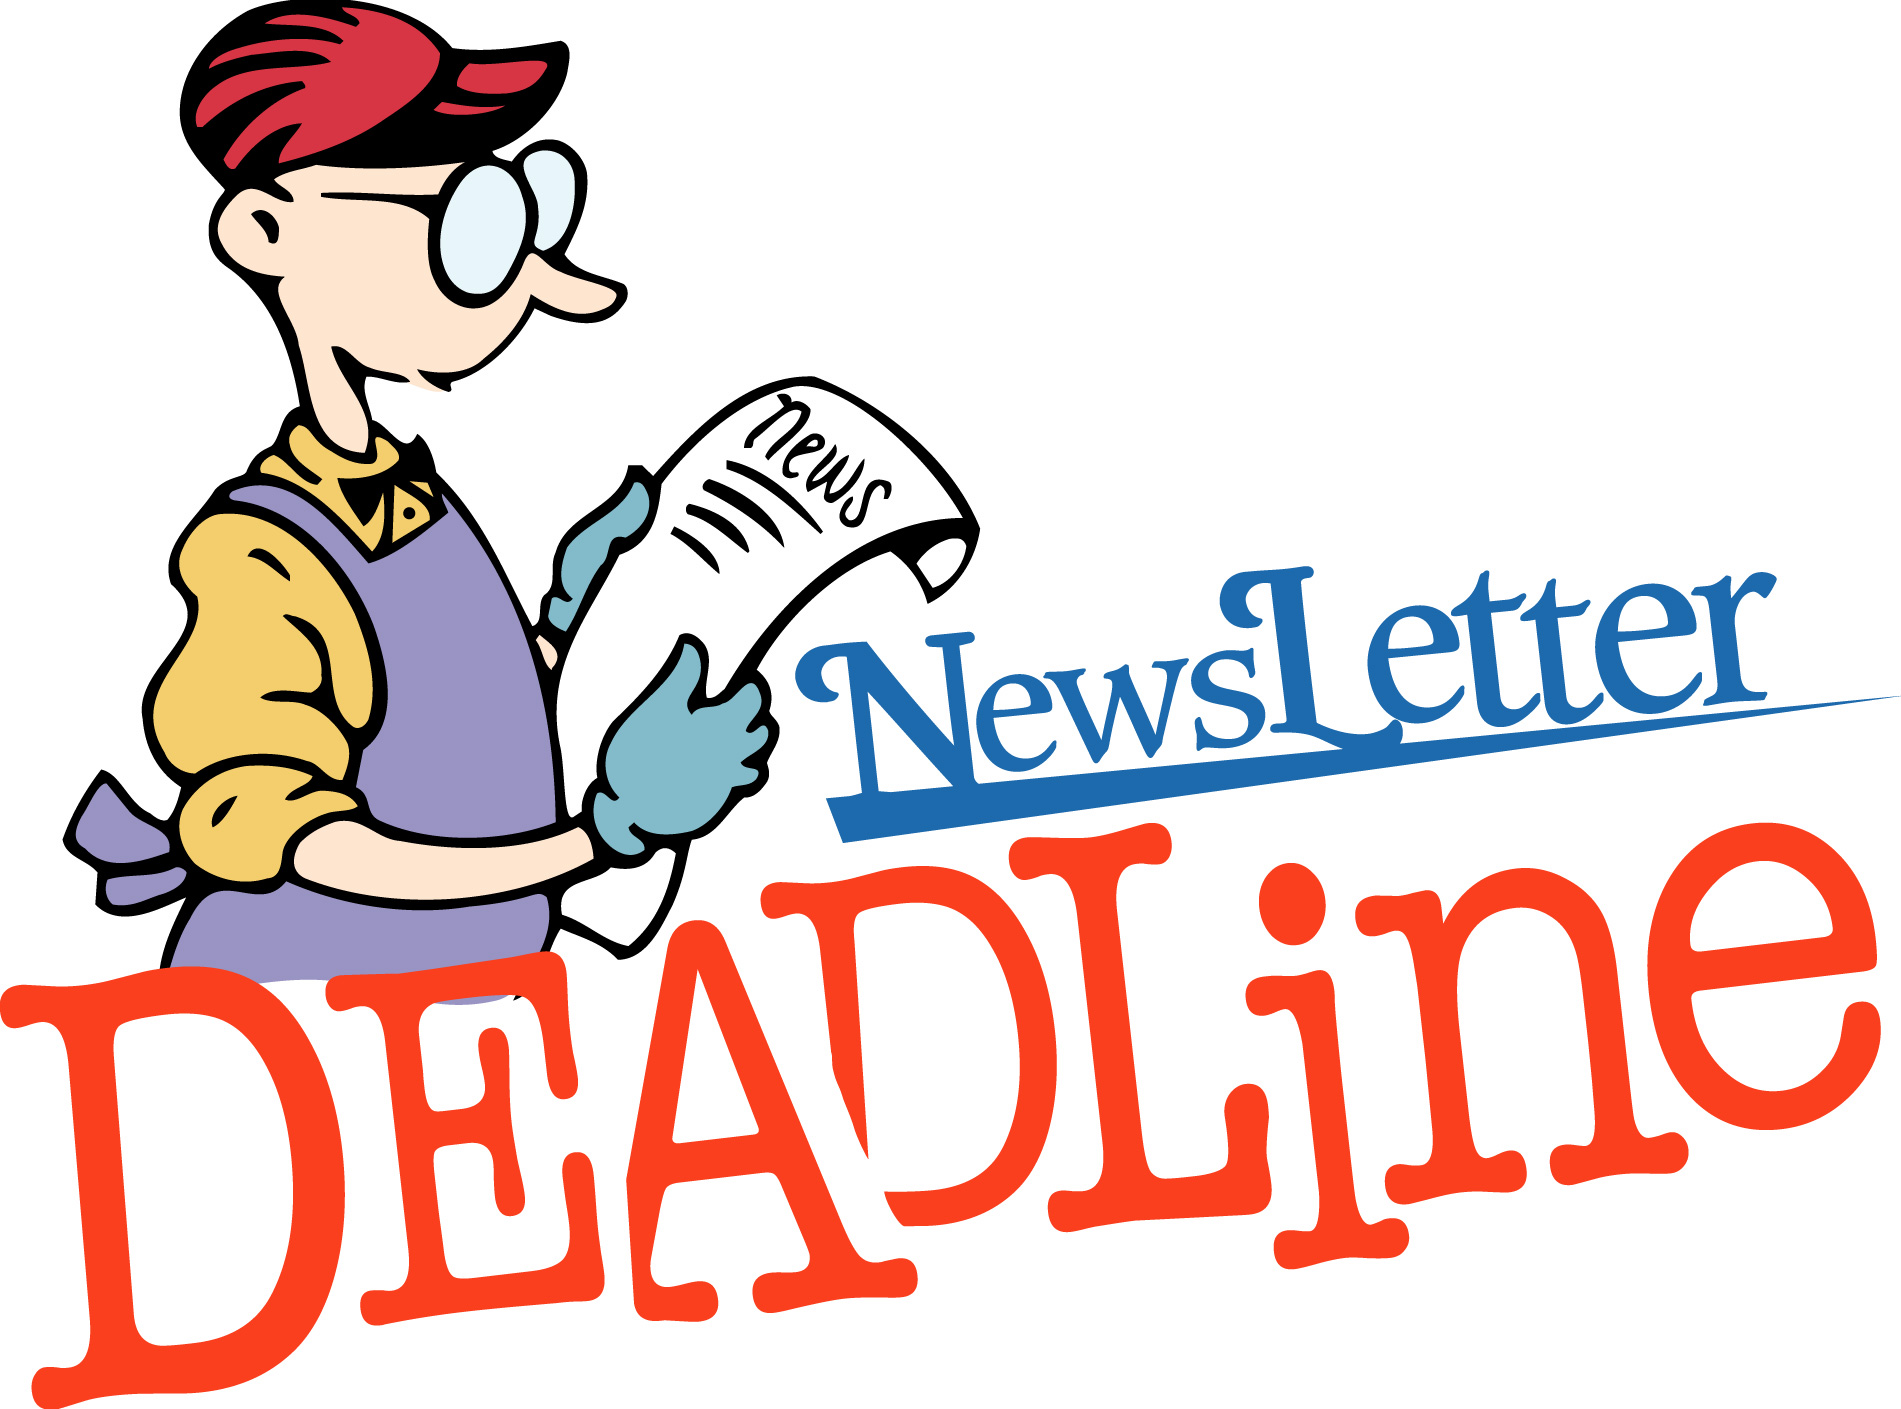 1901x1409 Newsletter Deadline Clipart Clipartfest 2